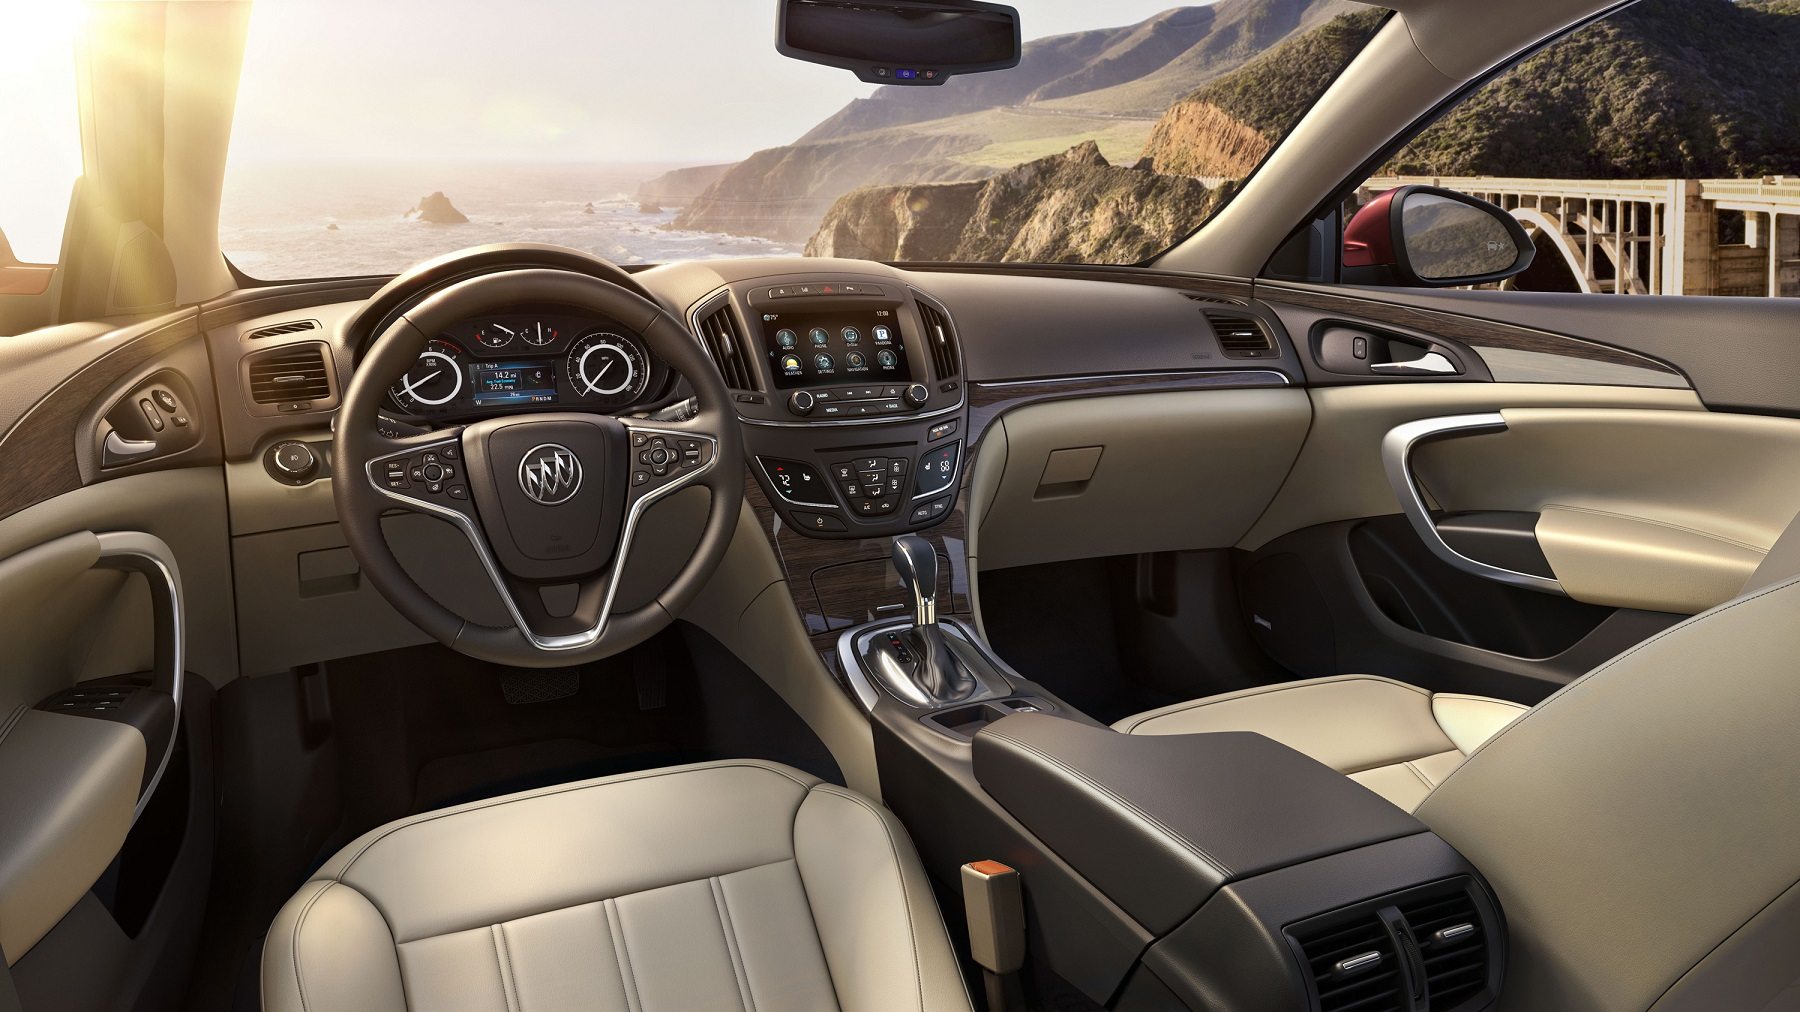 Manufacturer photo: Buick's 2014 Regal is sportier and smarter with new, purposeful technologies to enhance safety and the driving experience, such as the  more refined turbo engine -- along with the introduction of all-wheel drive